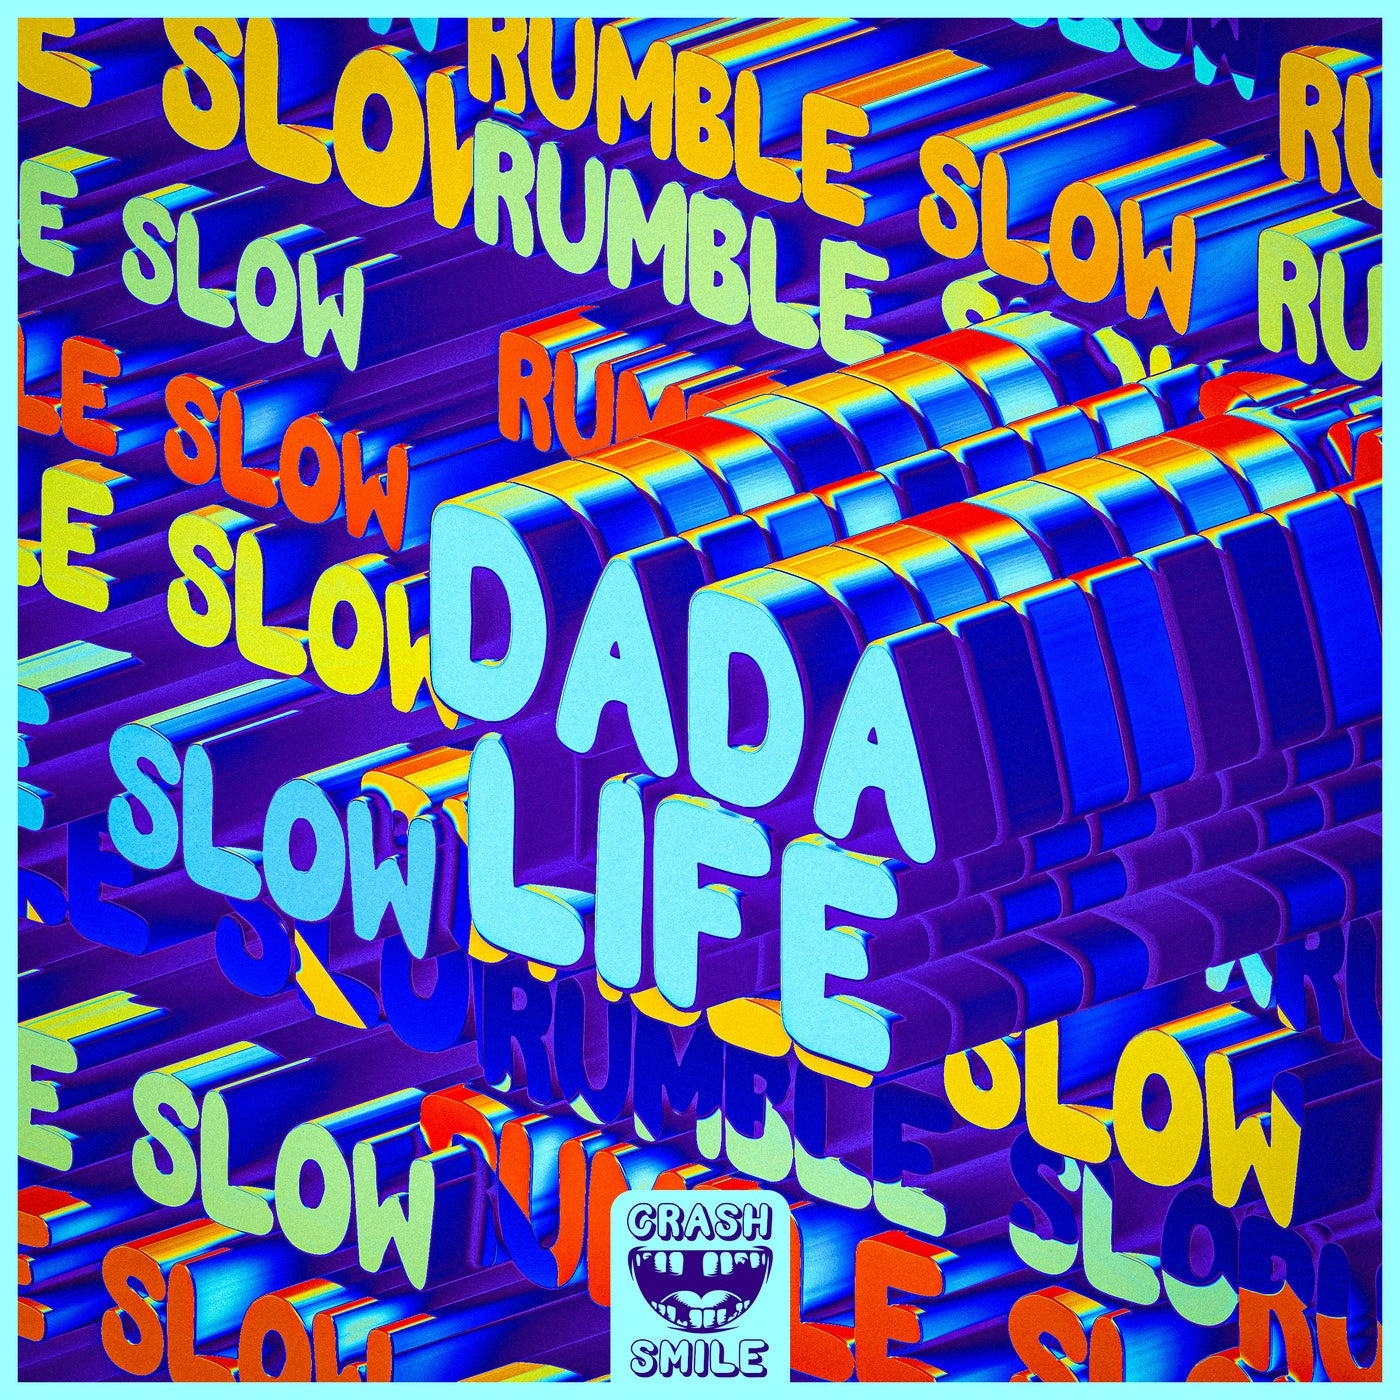 Rumble Slow (Extended Mix)